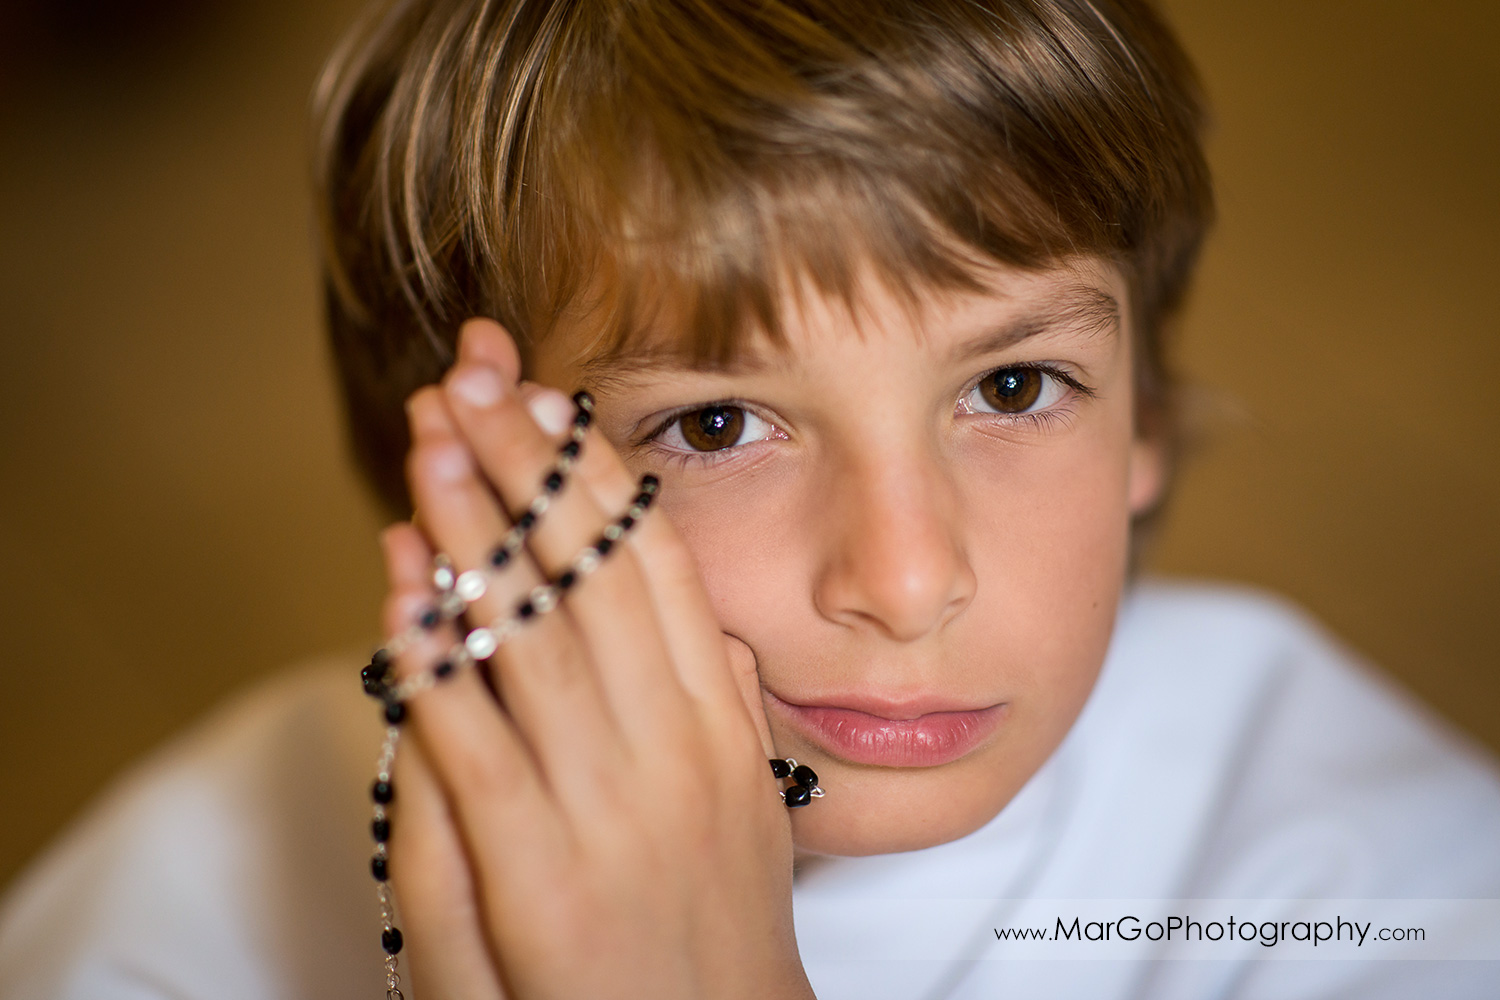 first communion boy in white alb holding rosary in wooden San Jose church pews